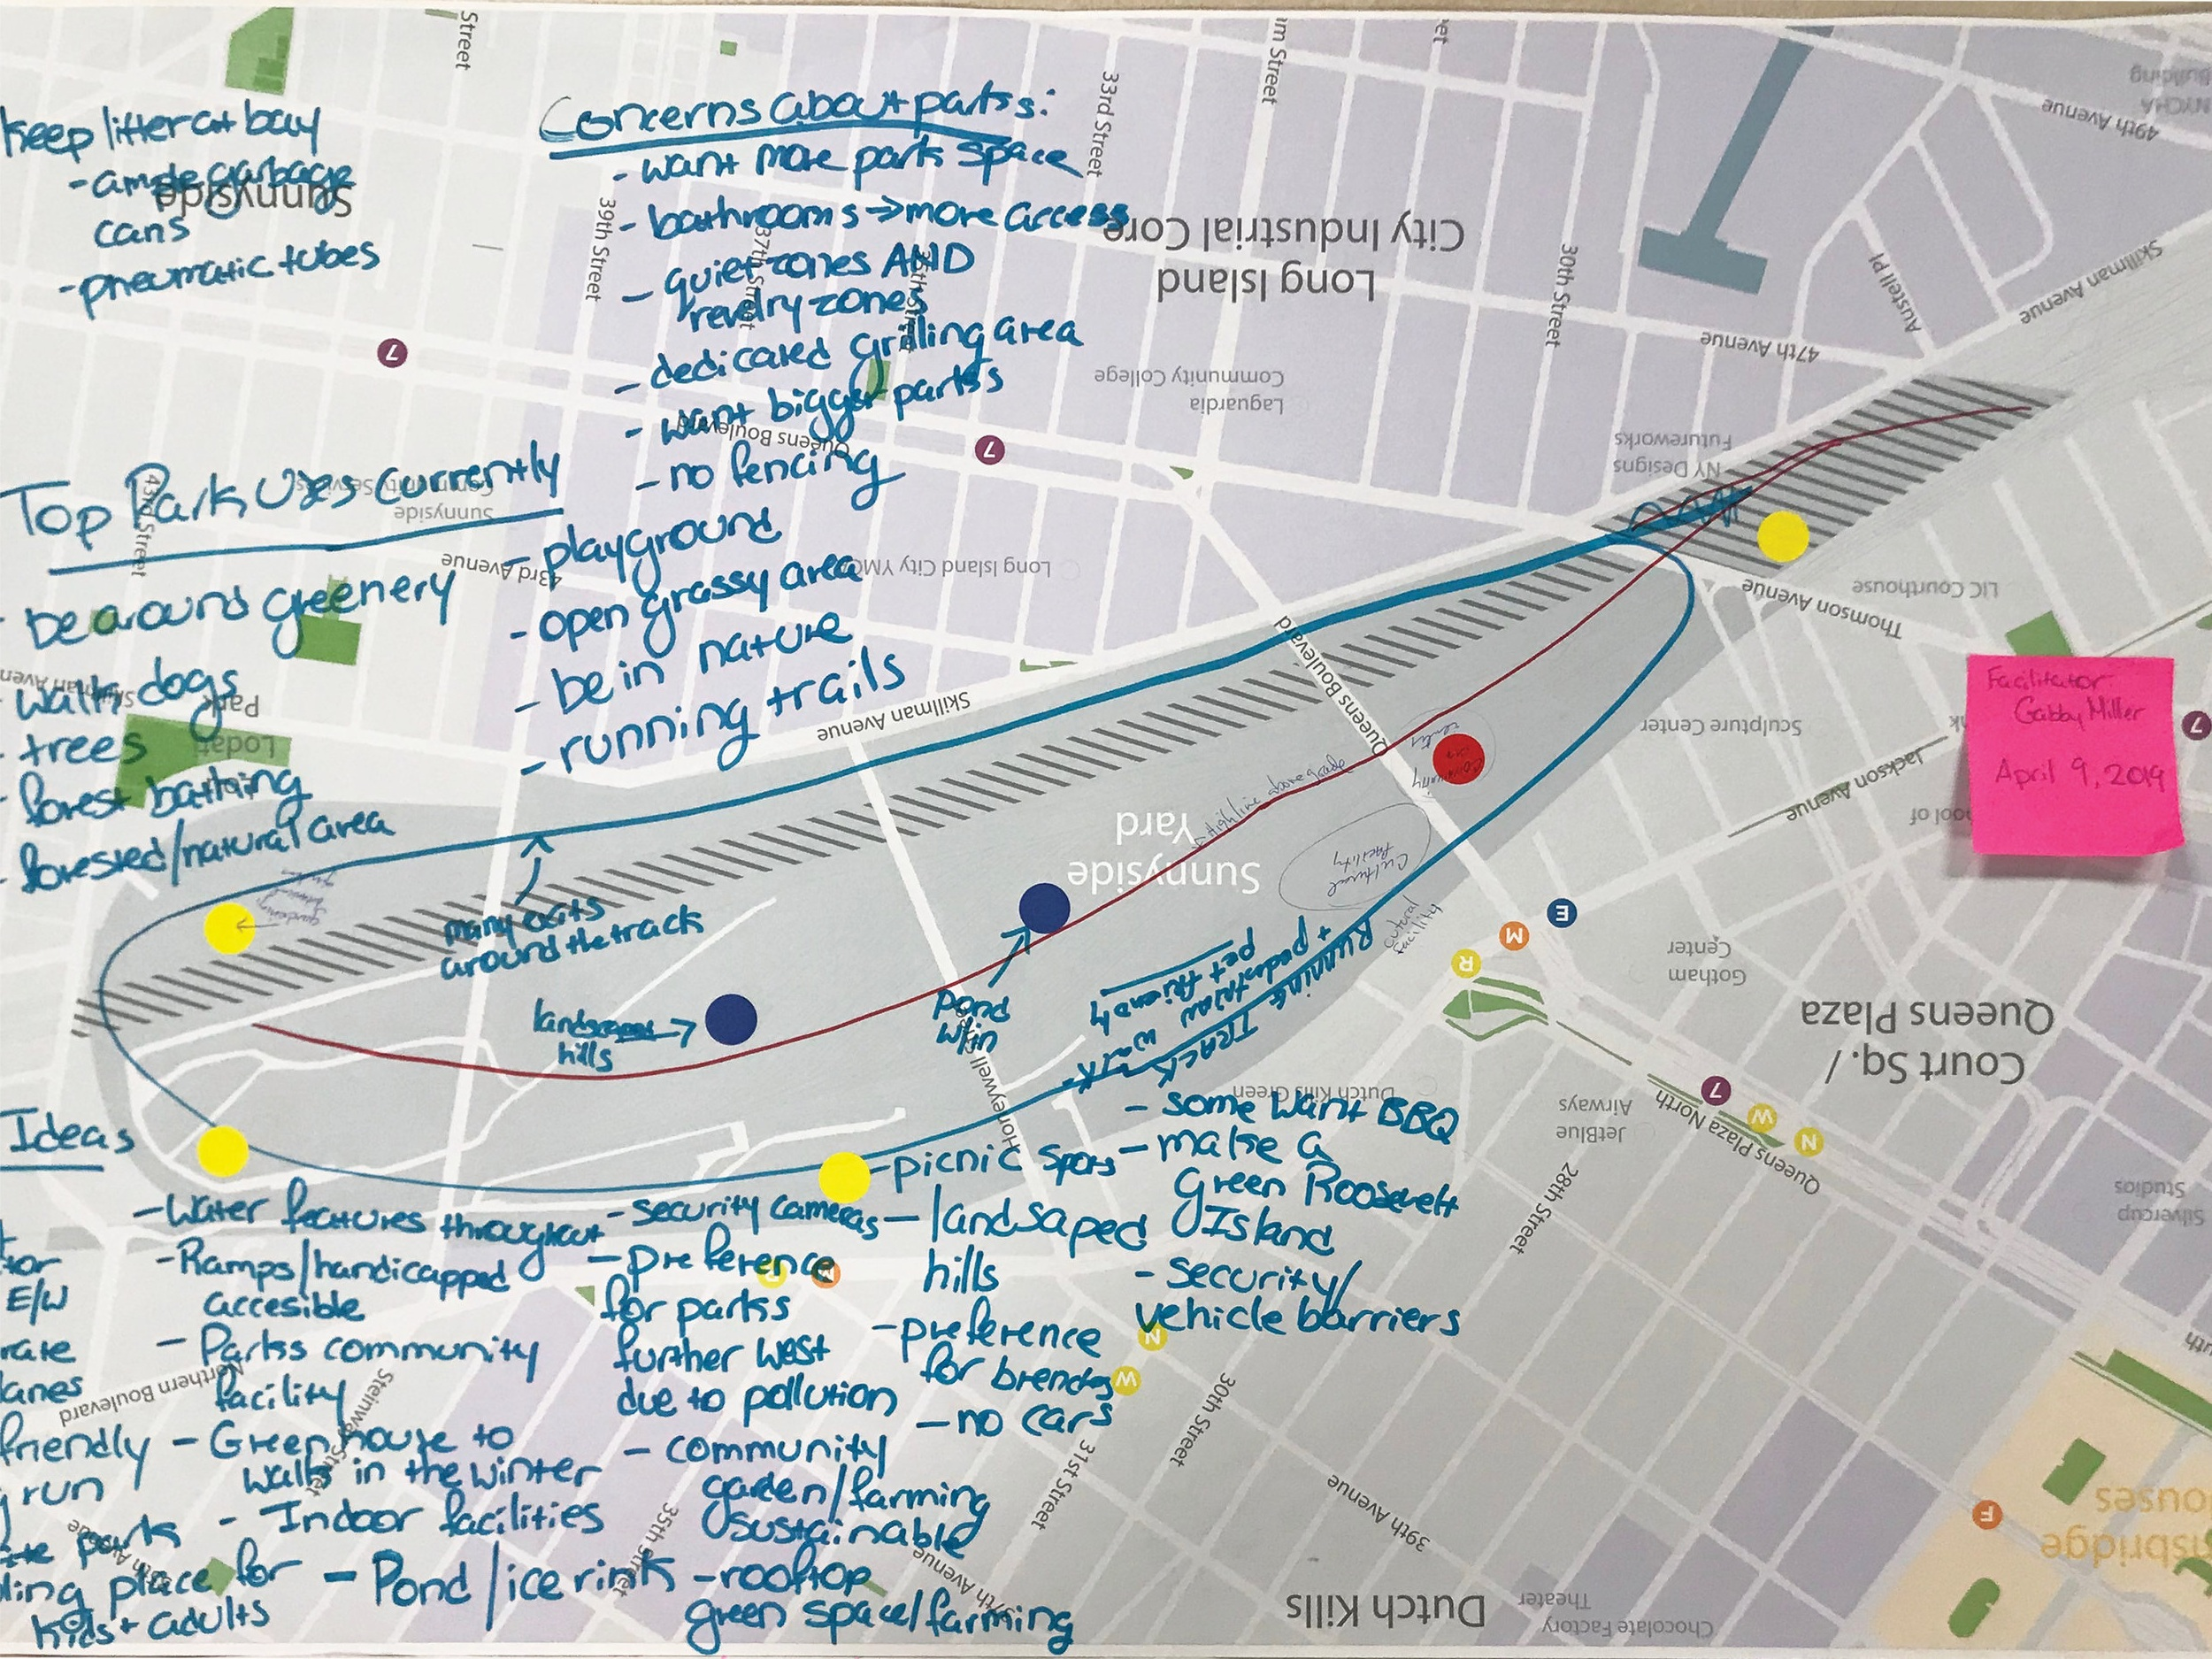 SSY_Public Workshop Findings Summary Open Space Map.jpg